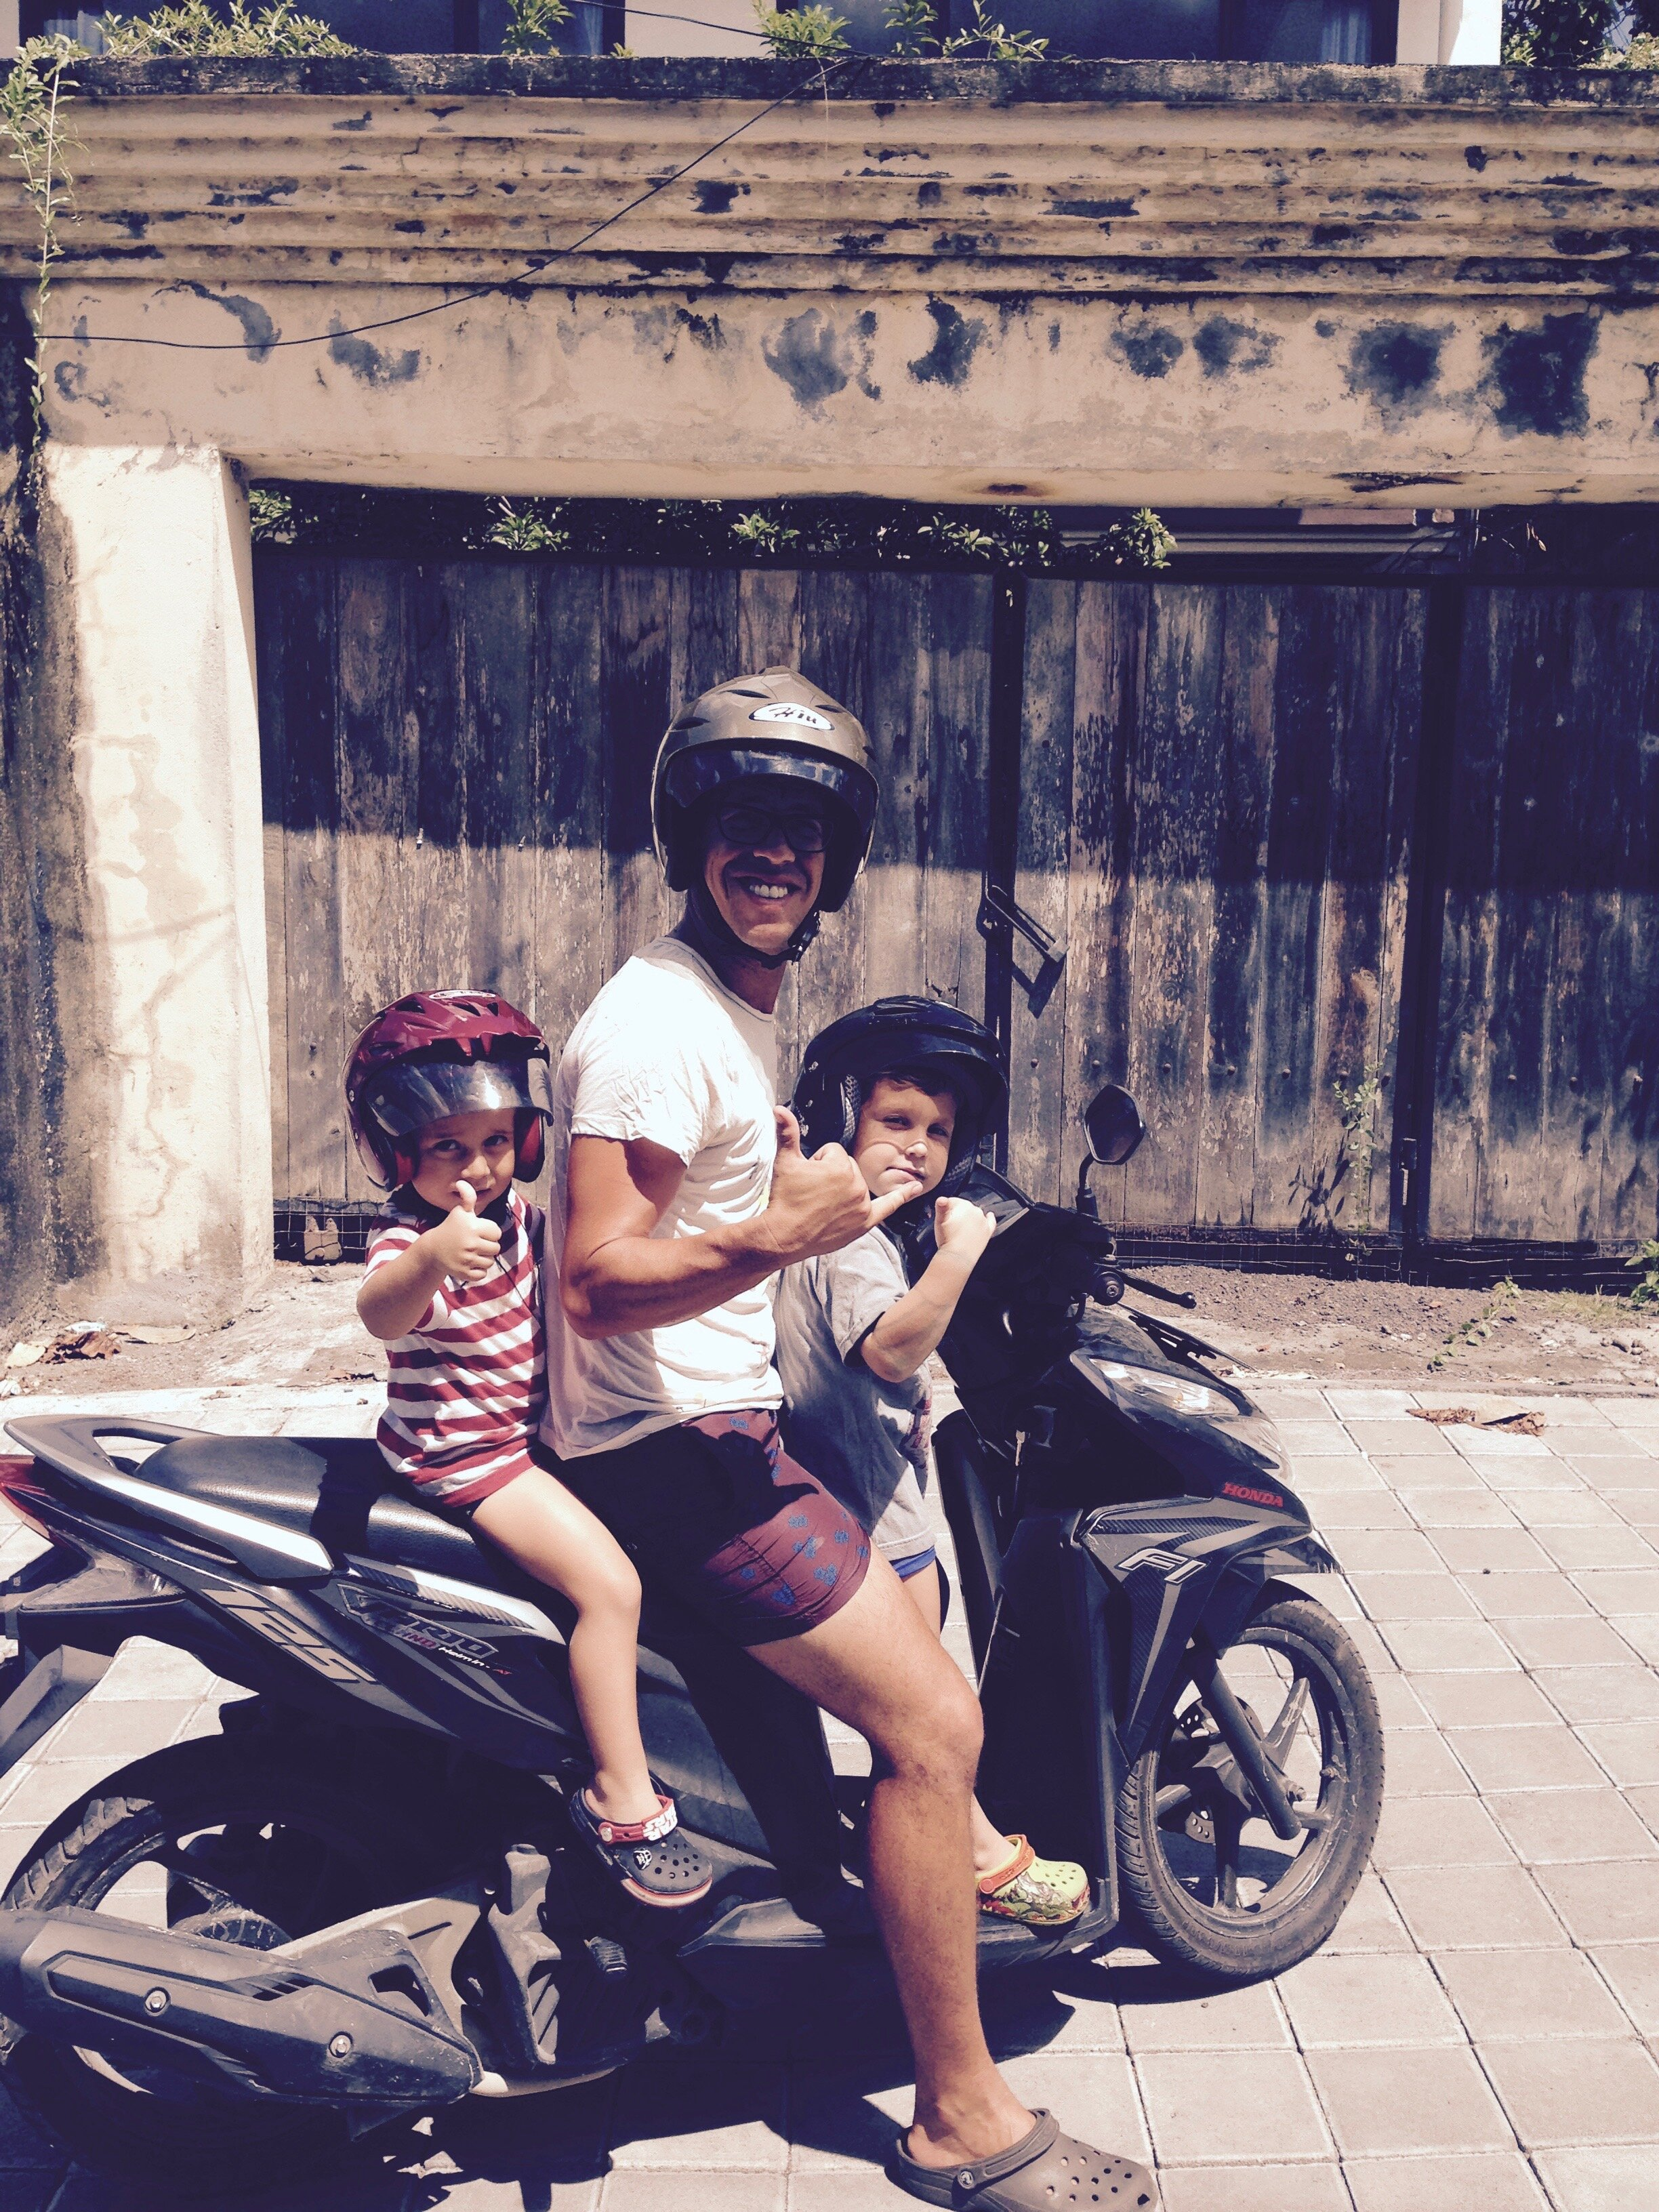 Our means of transport in Bali. The motorcycle, what I swore never to get on.